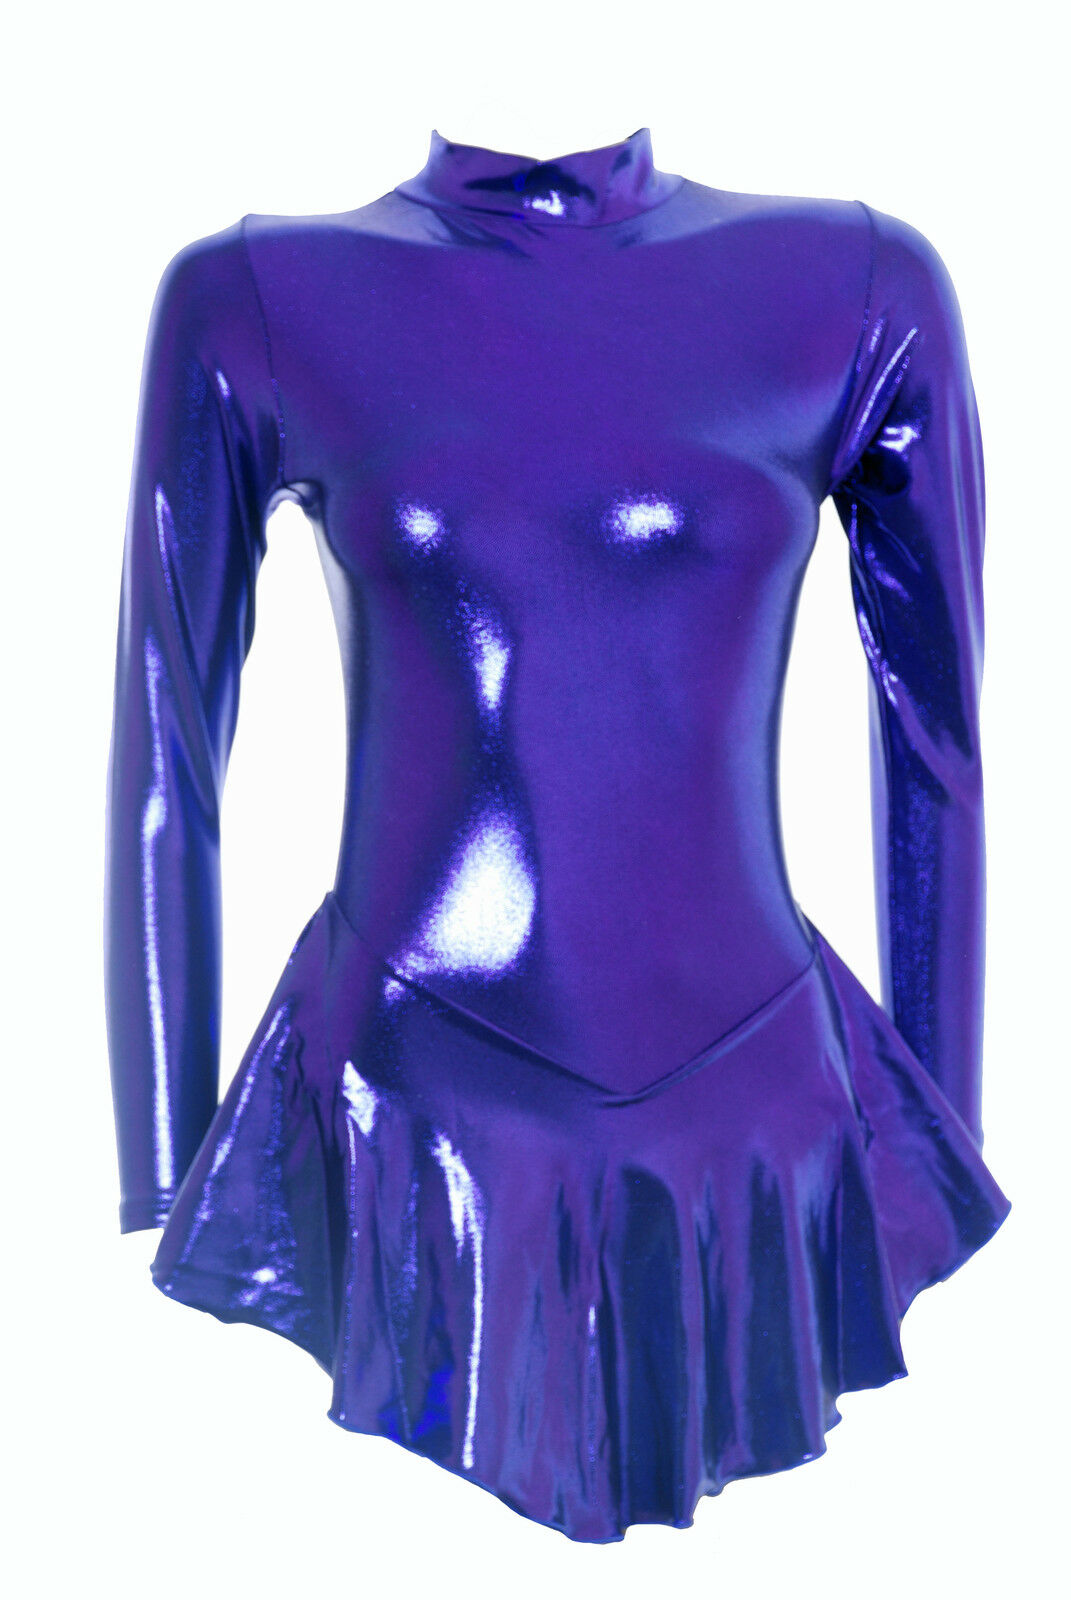 Skating Dress - PURPLE SHEEN METALIC -   ALL SIZES AVAILABLE - (S107)  customers first